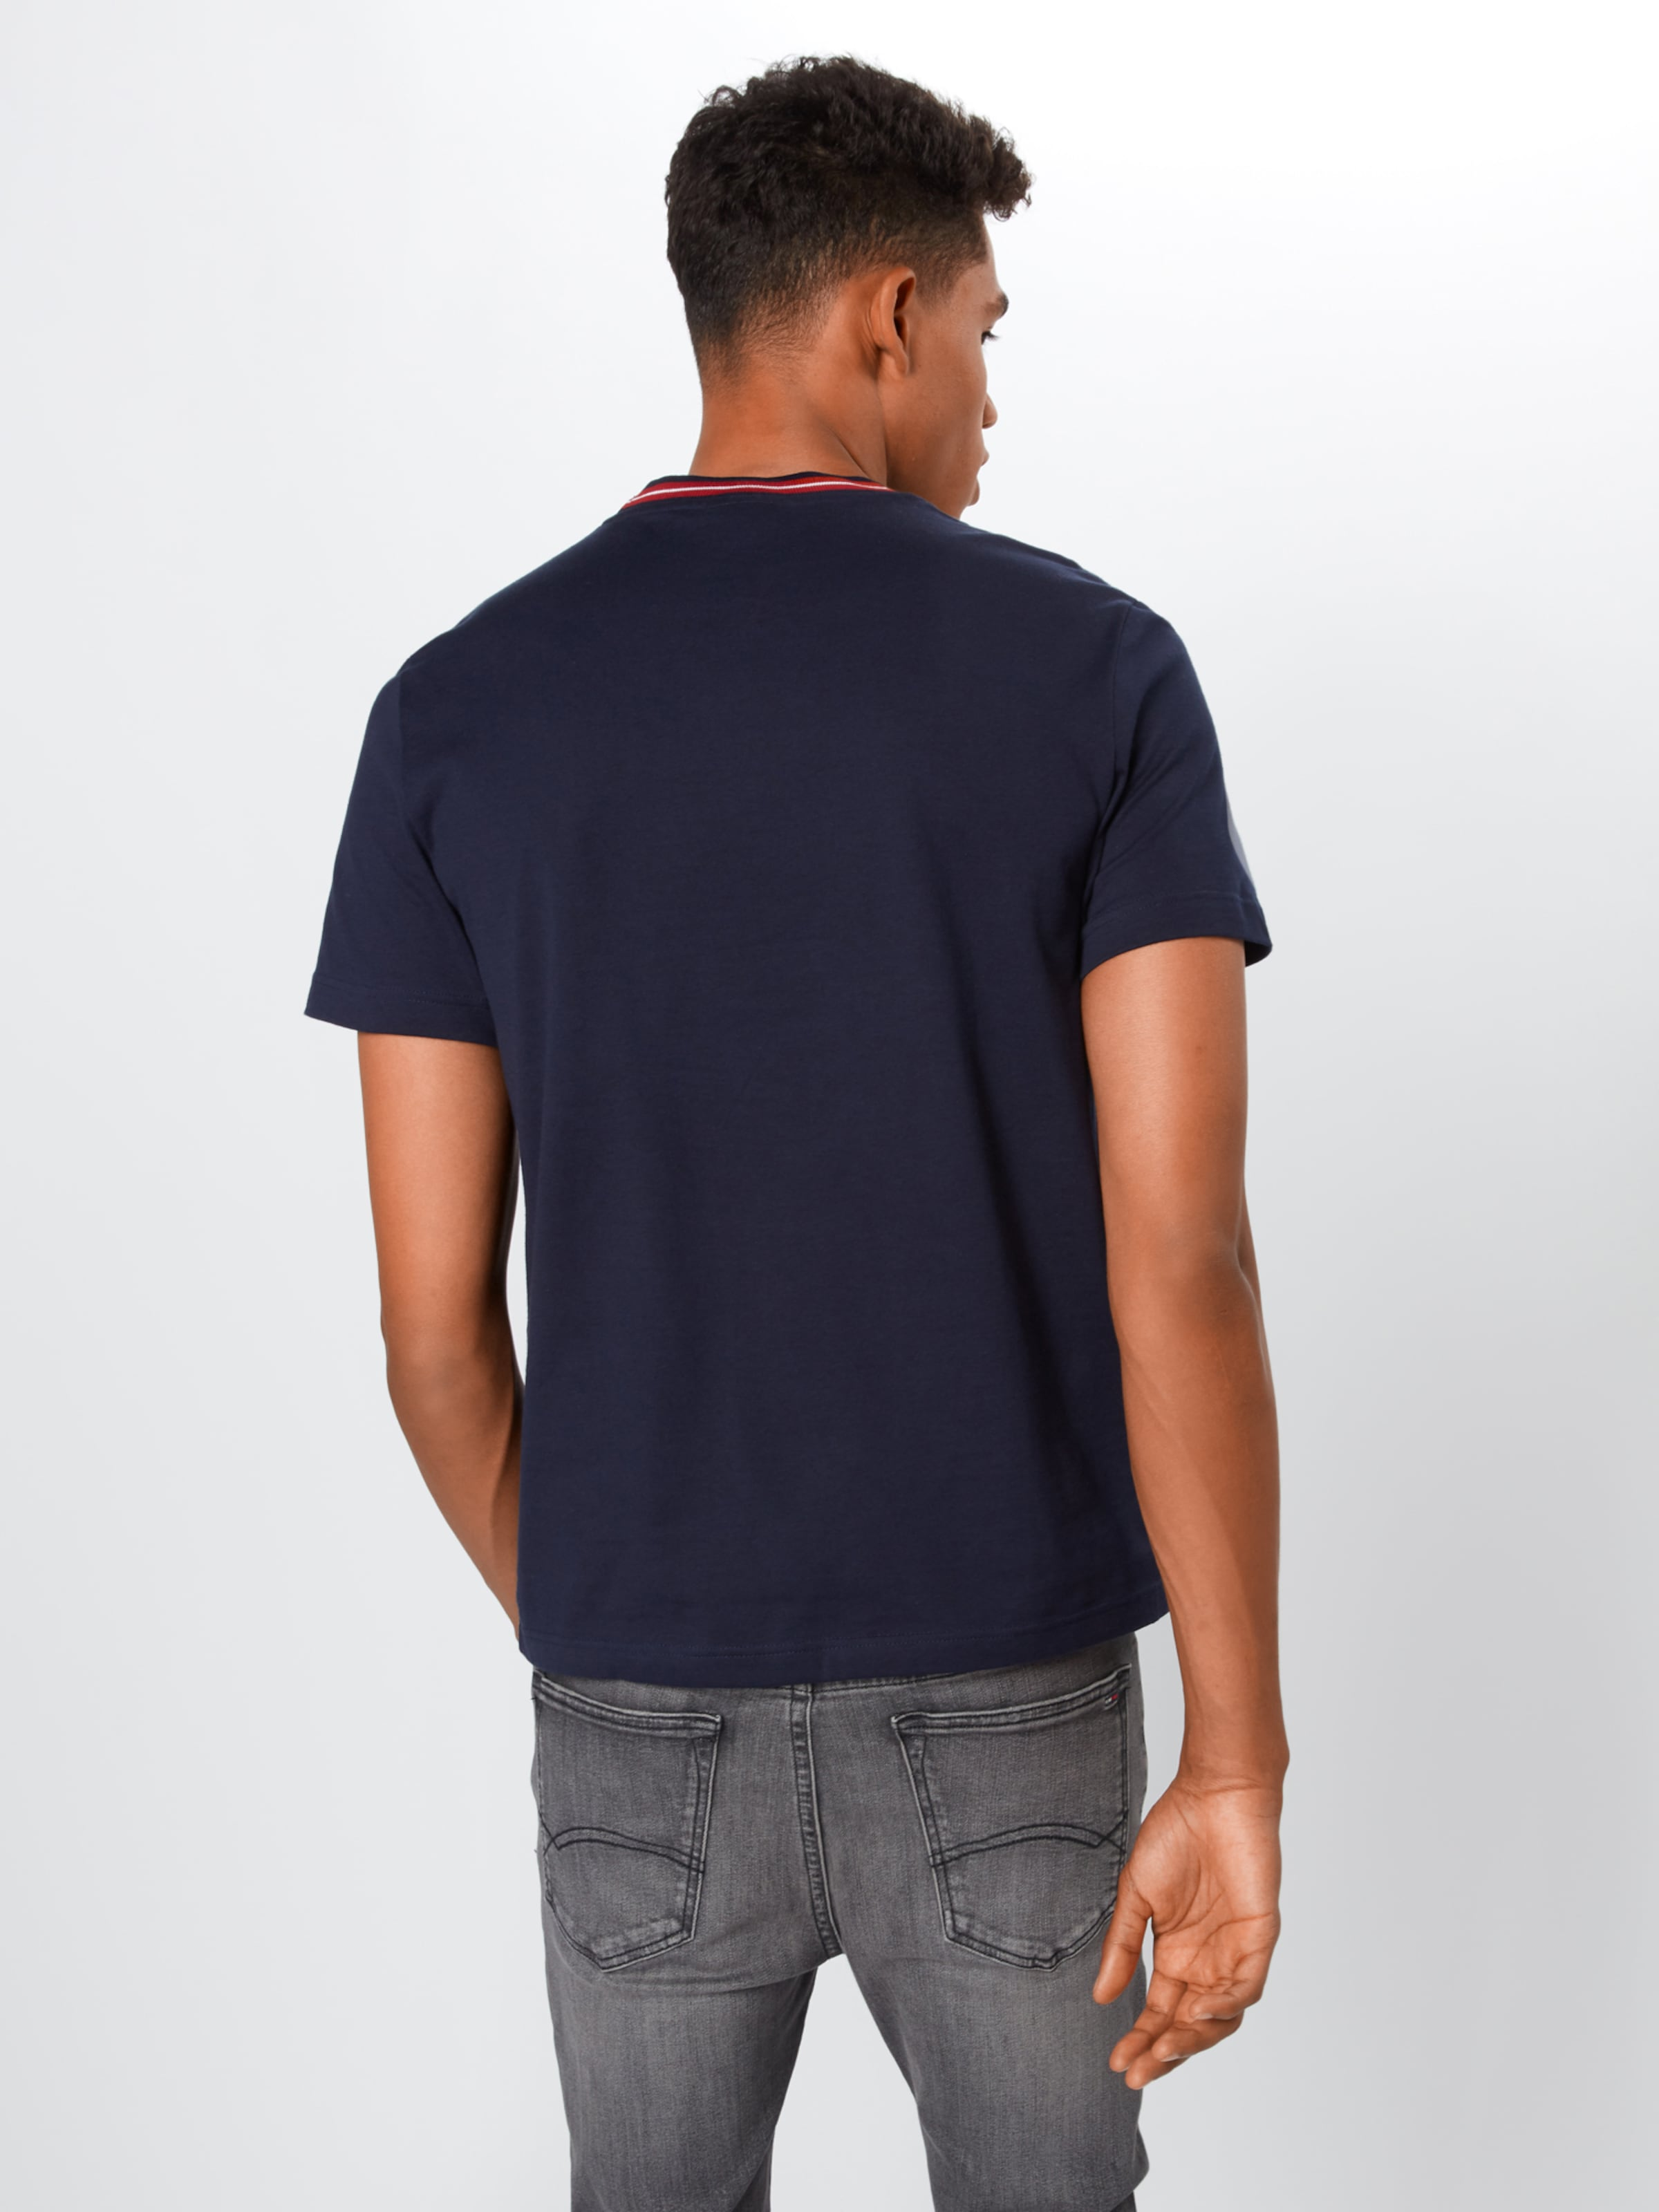 Lacoste T shirt Lacoste shirt Marine Lacoste In T shirt T In Marine In c3q4L5ARj